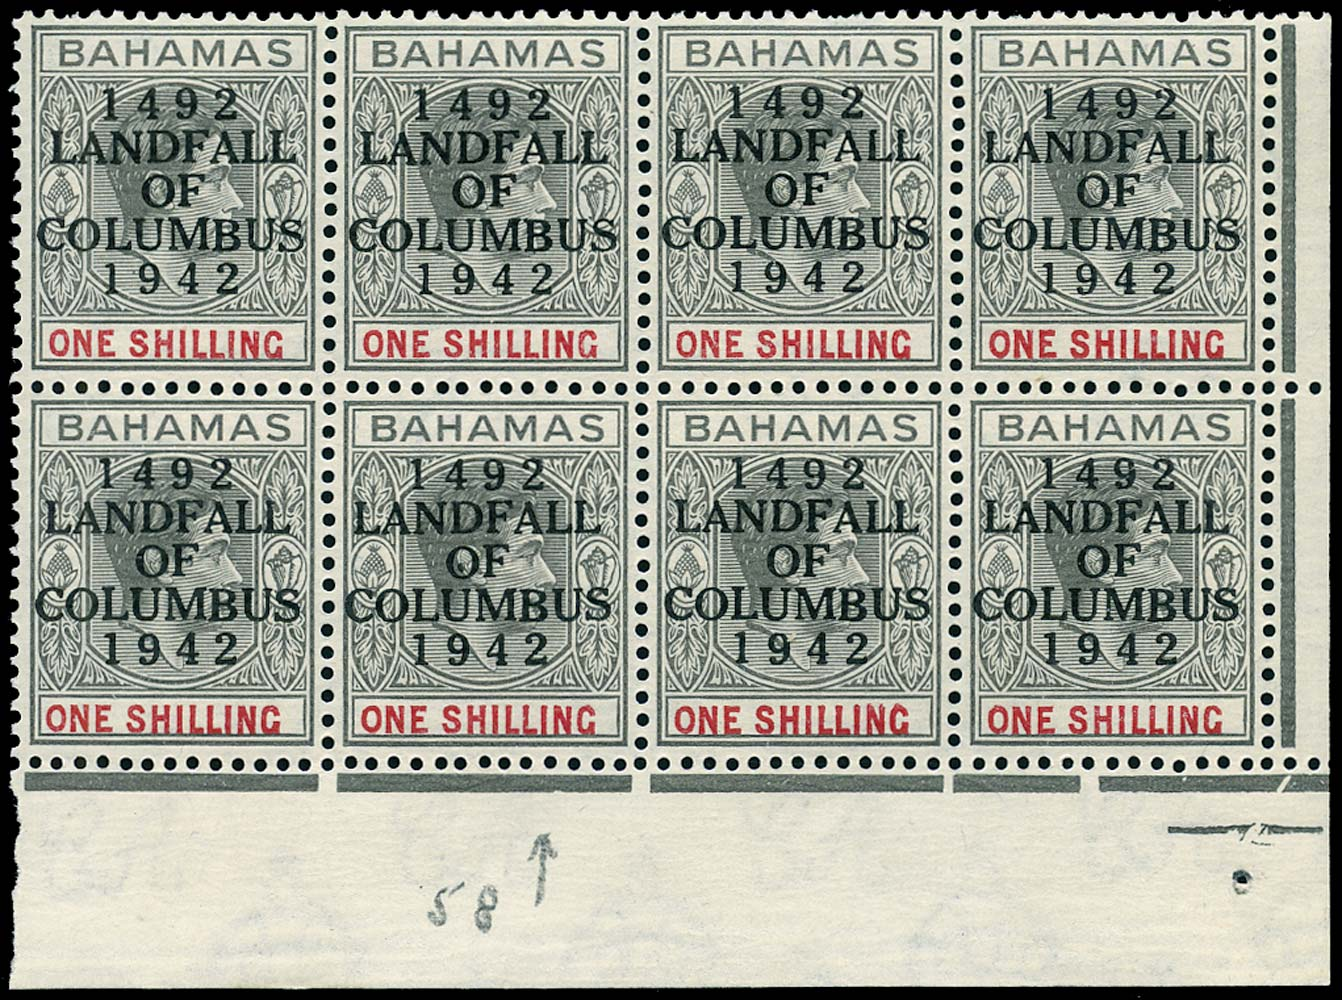 BAHAMAS 1942  SG171 Mint Landfall of Columbus 1s variety Dot in O